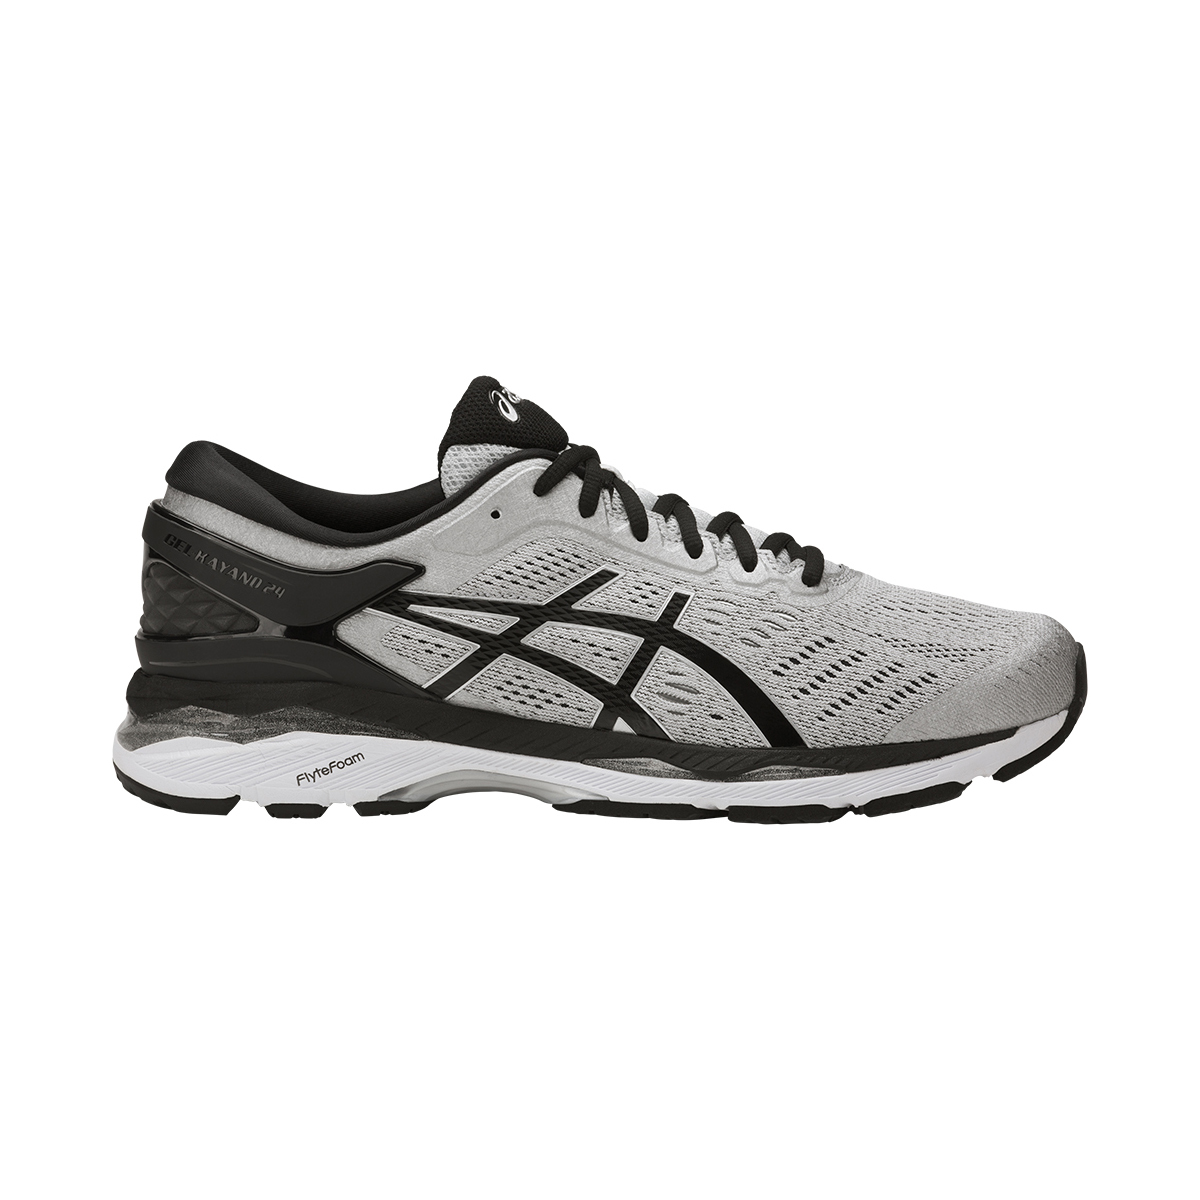 Motion Control Trail Walking Shoes